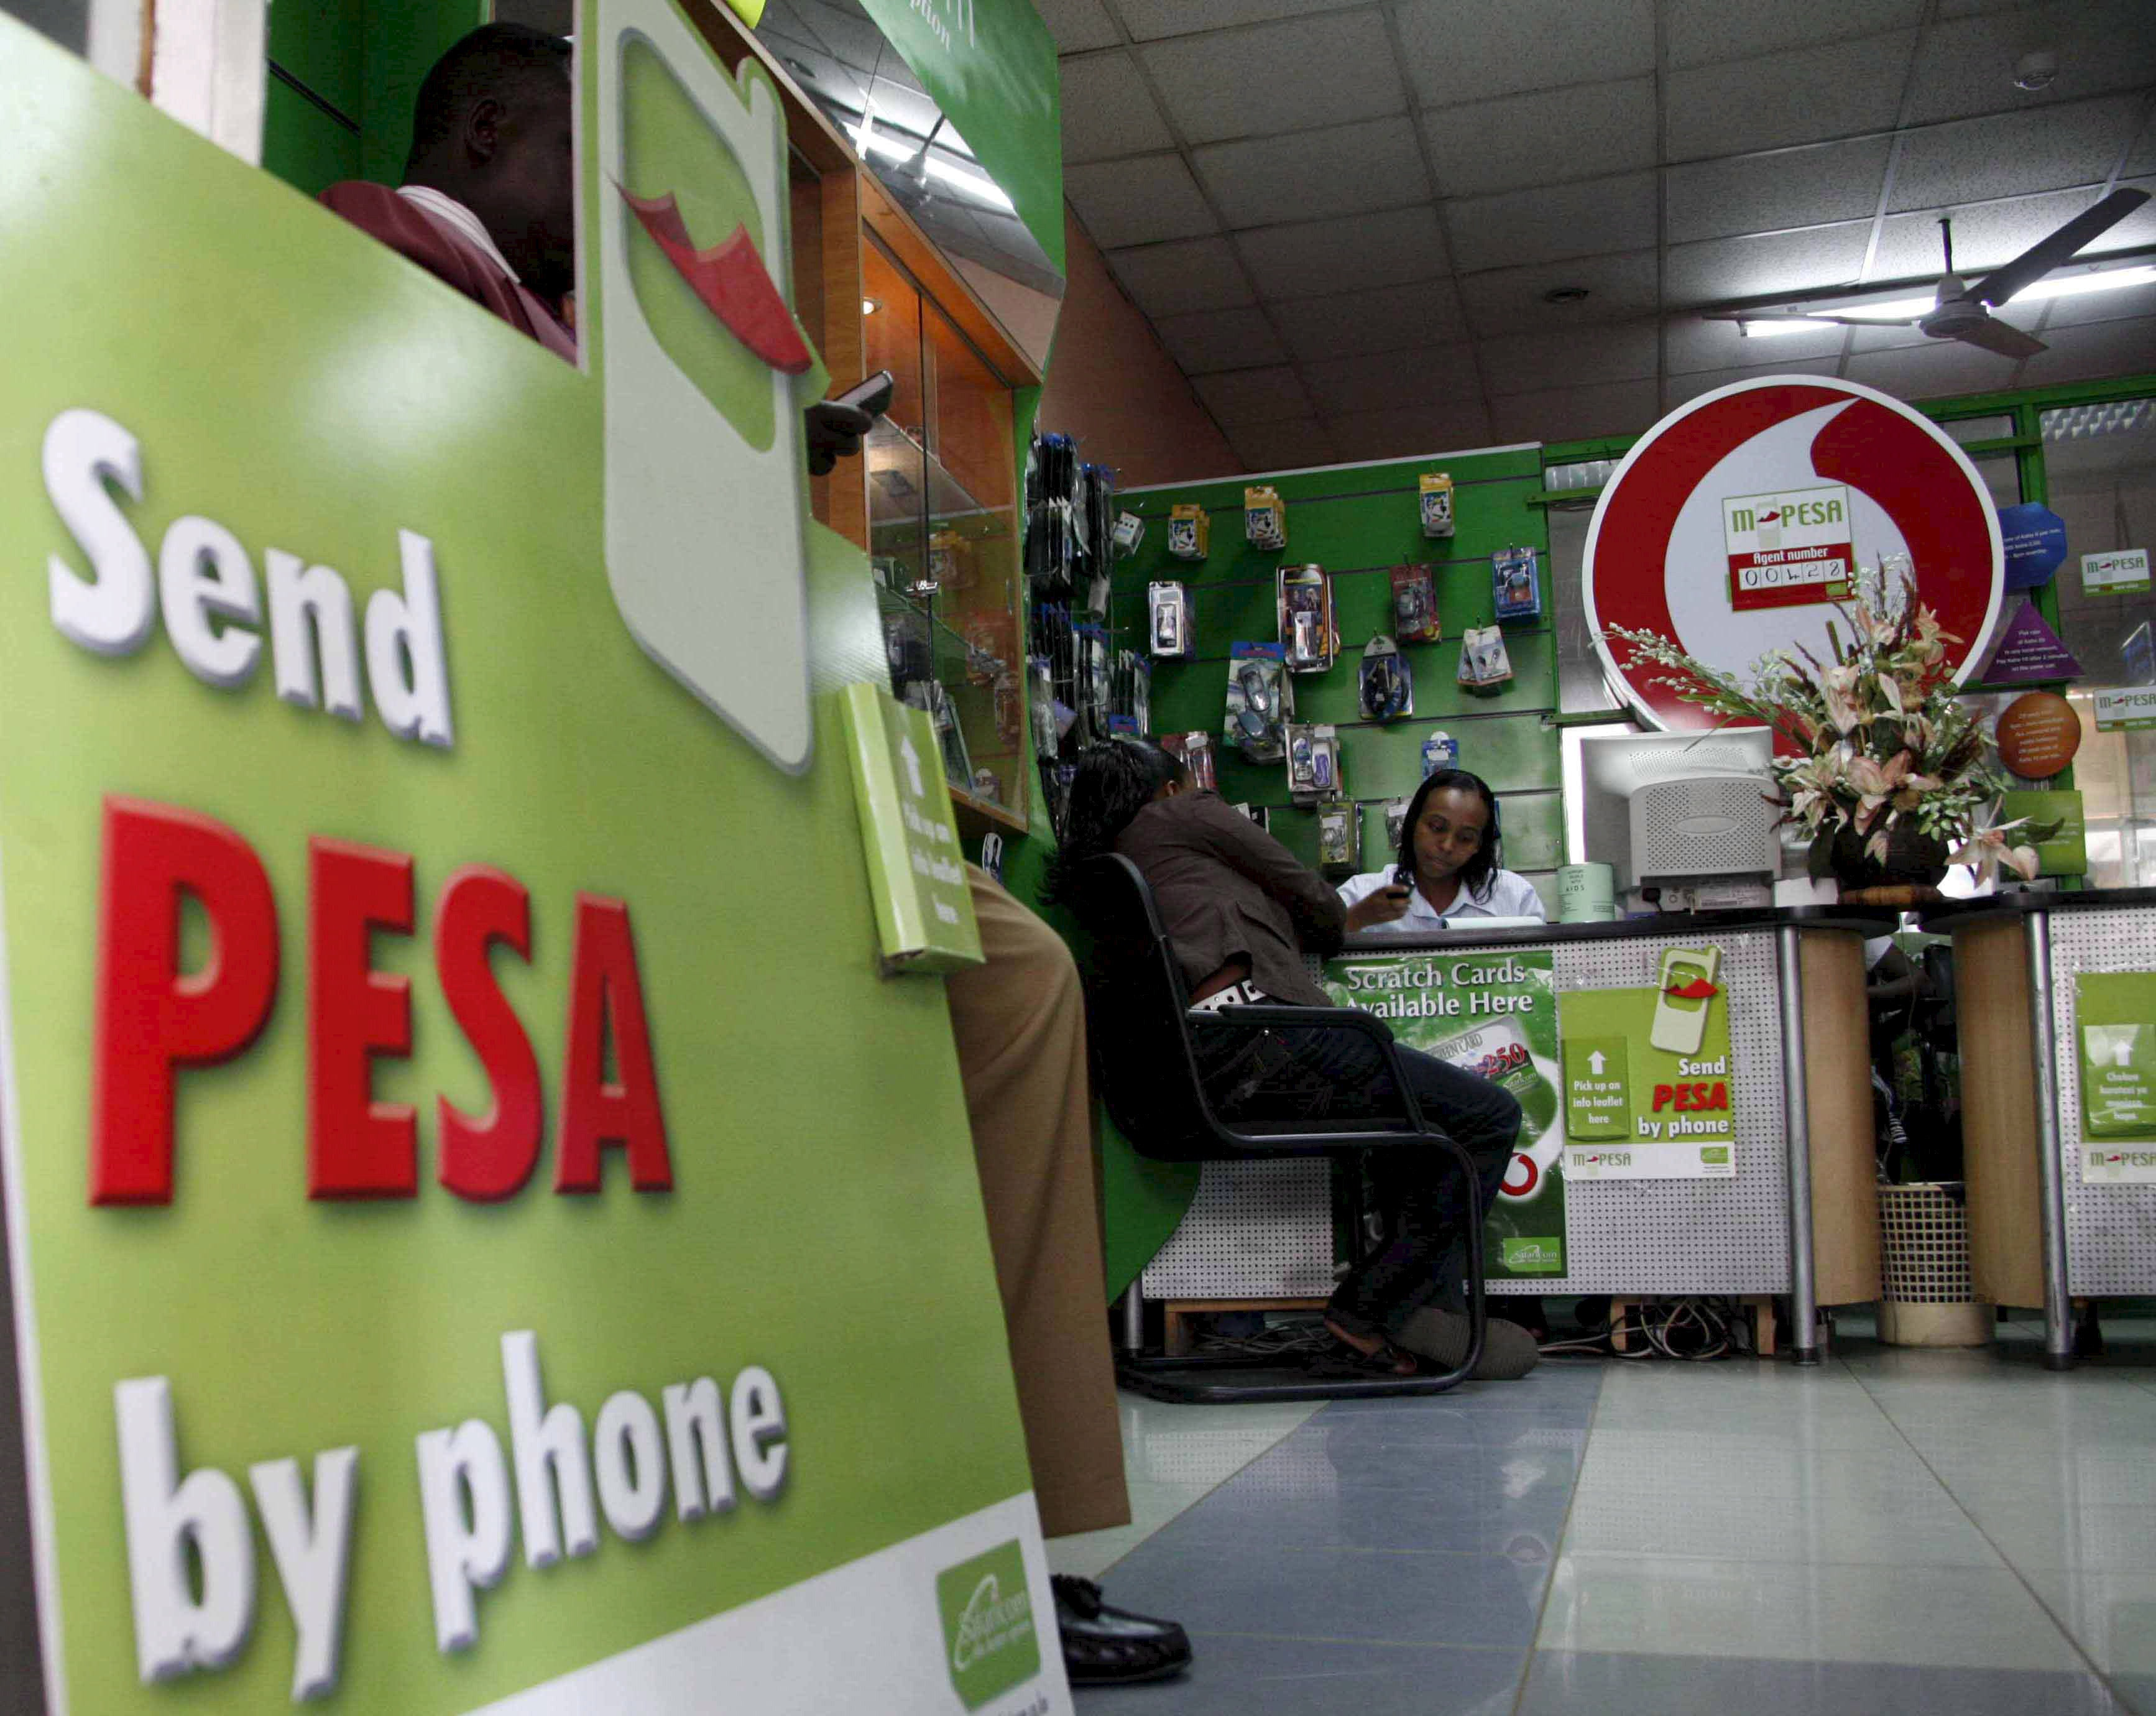 New online jobs in kenya 2020 that pay through mpesa